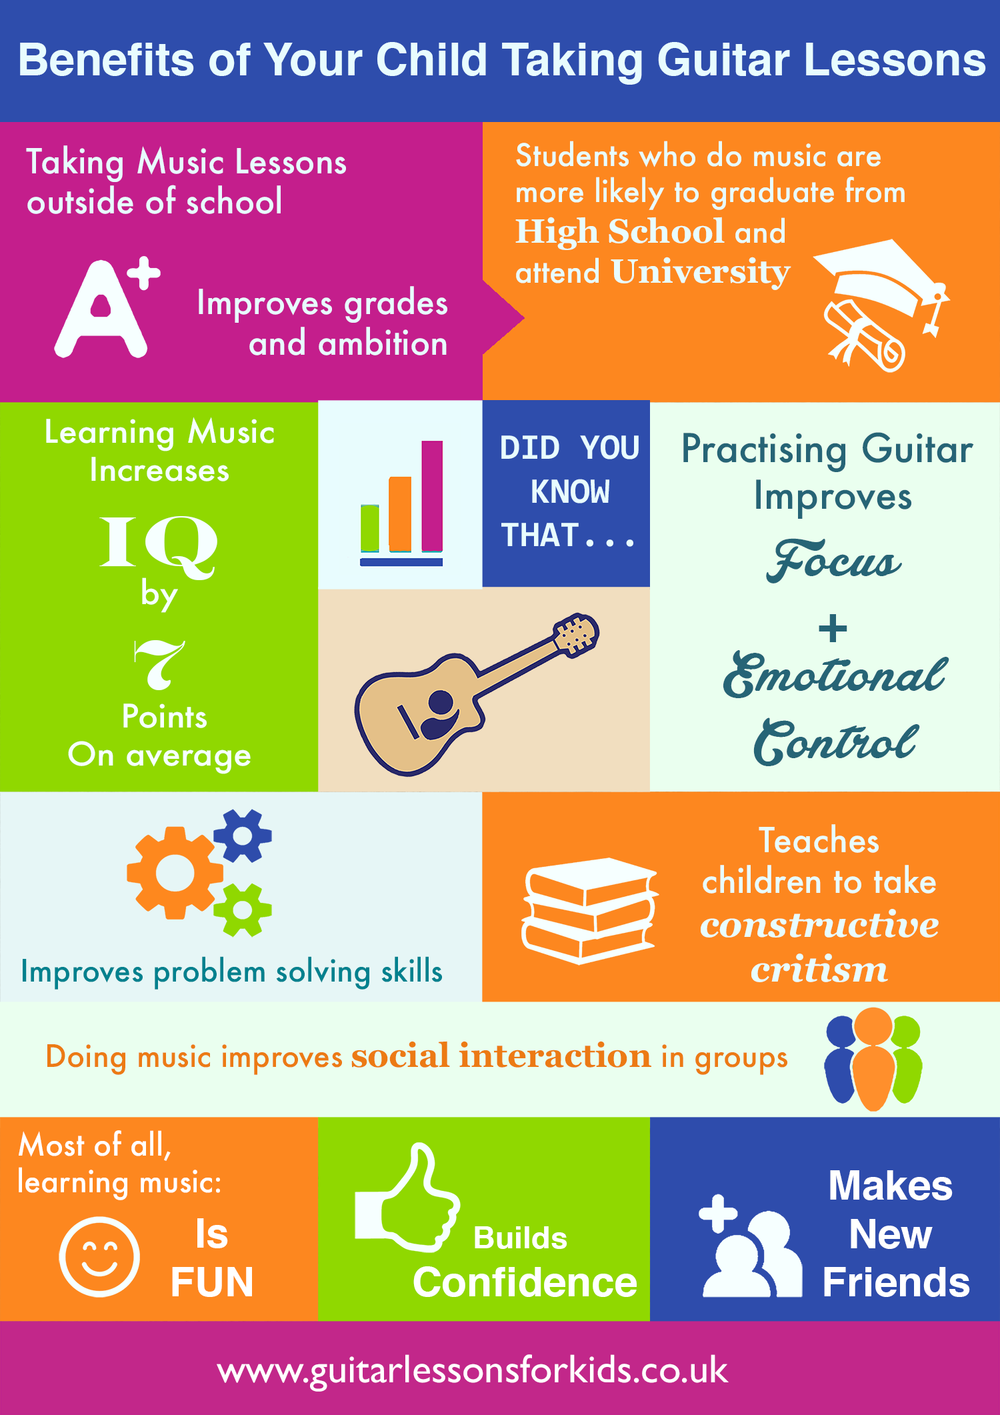 Benefits of guitar lessons for children and kids